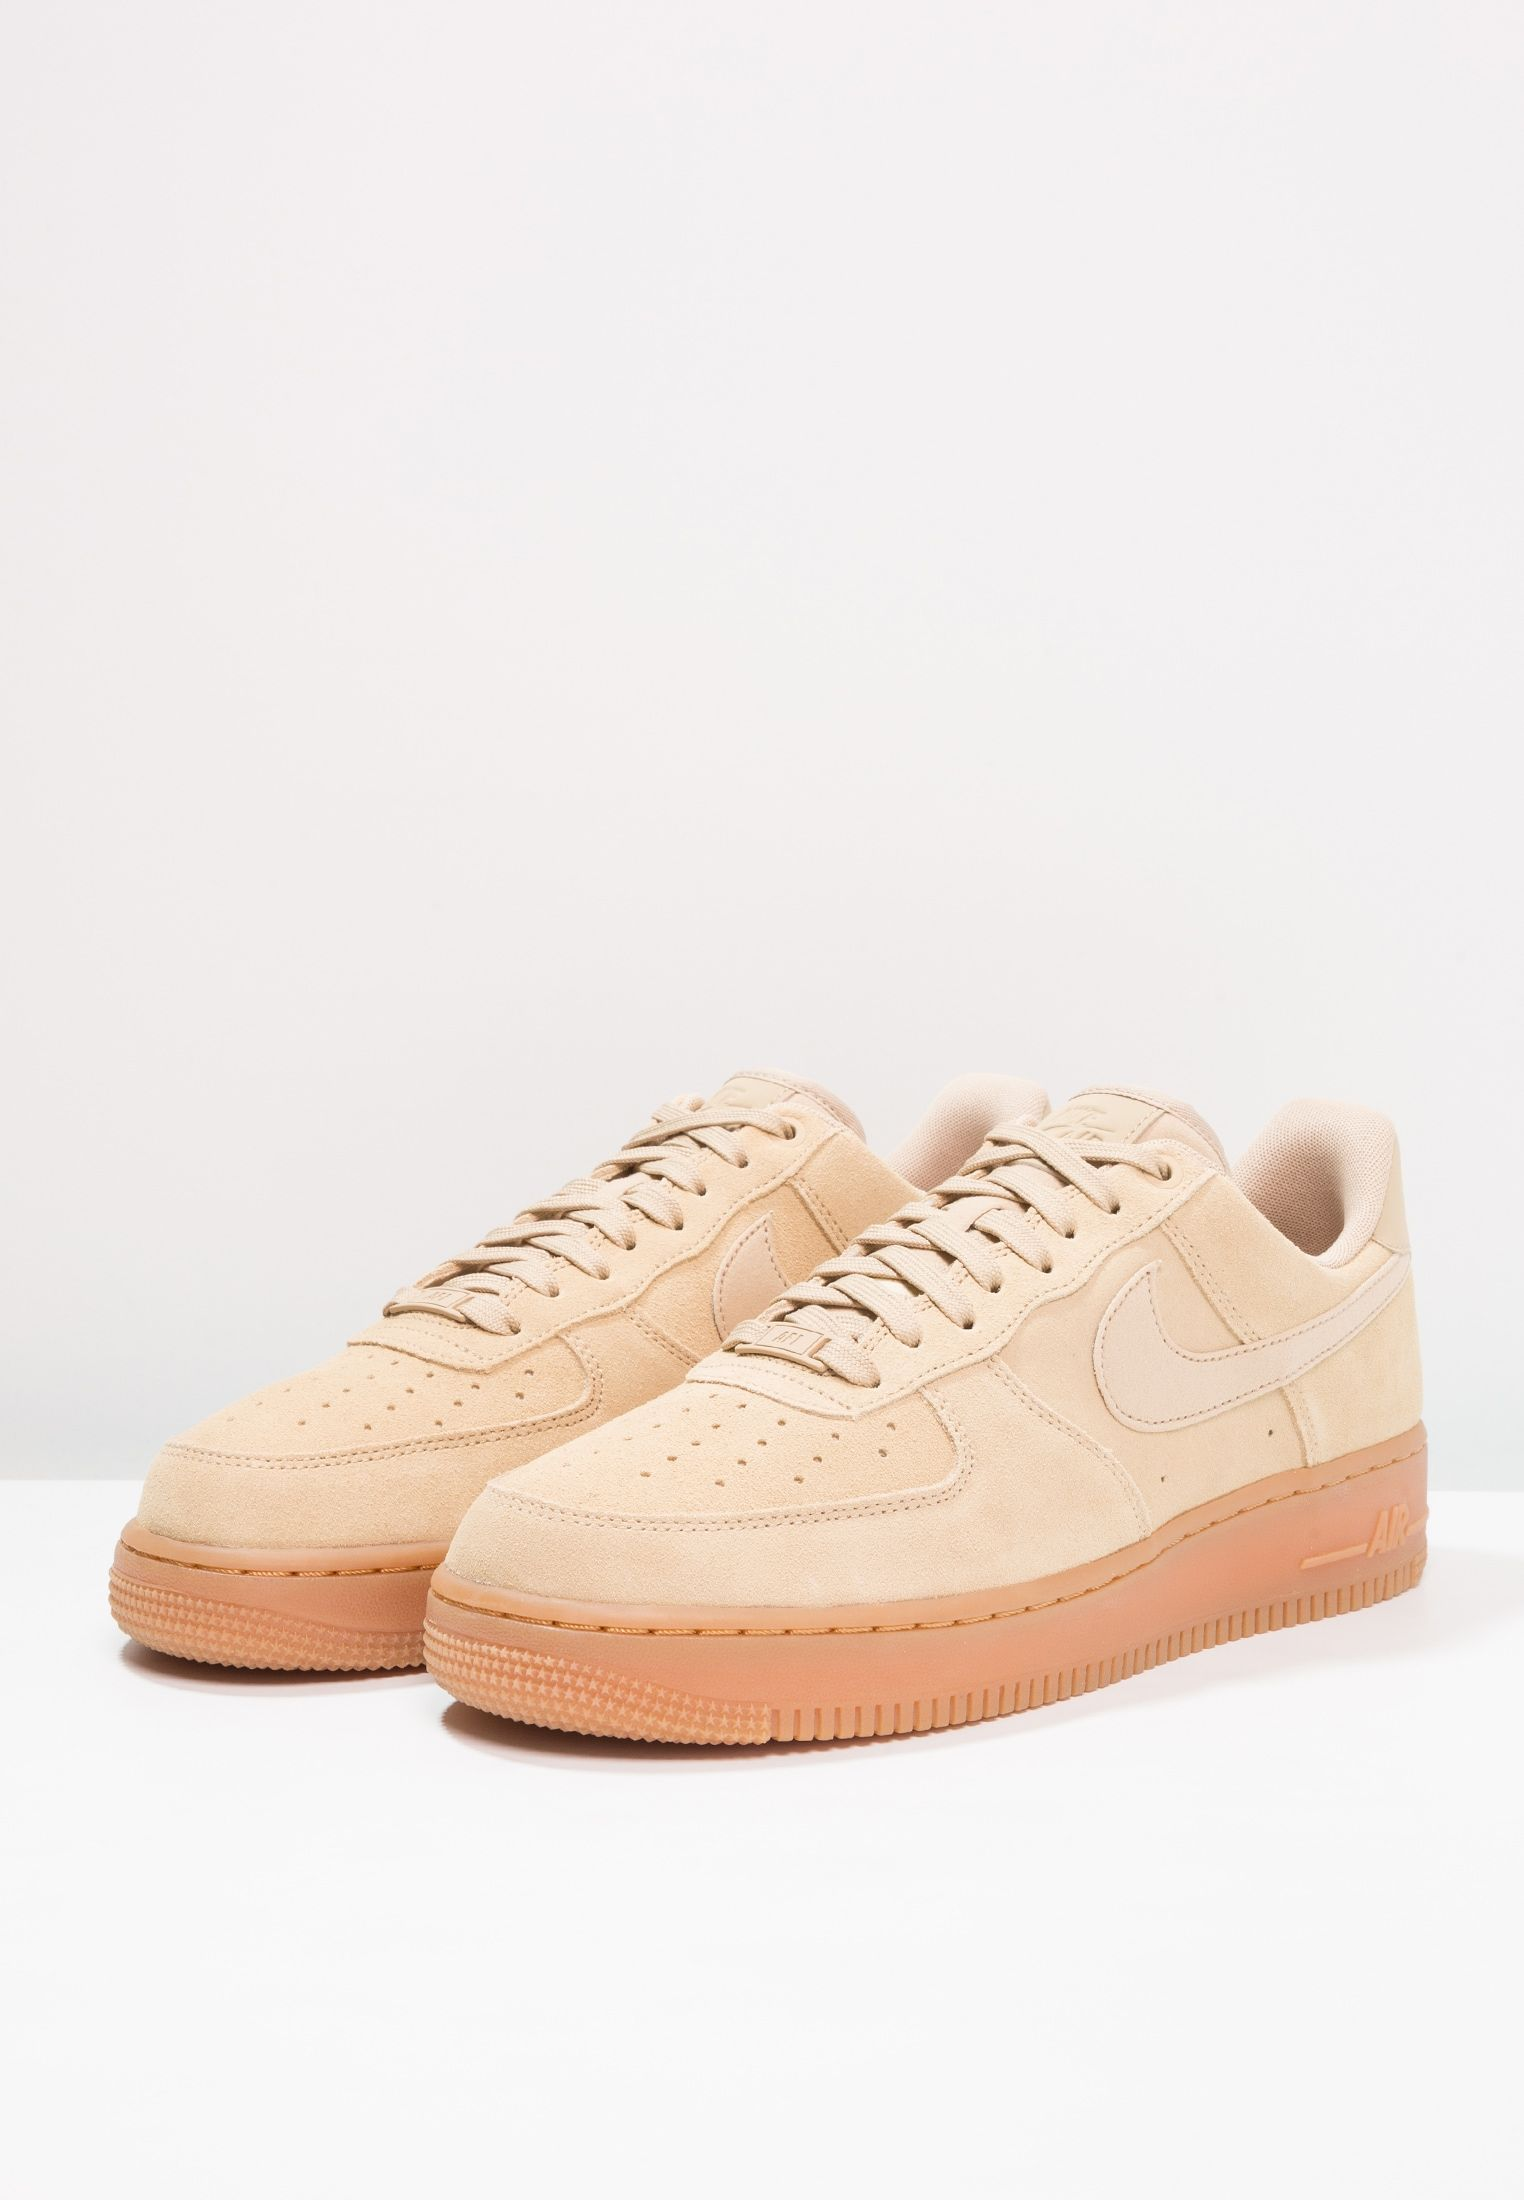 nike air force 1 suede mushroom medium brown ivory